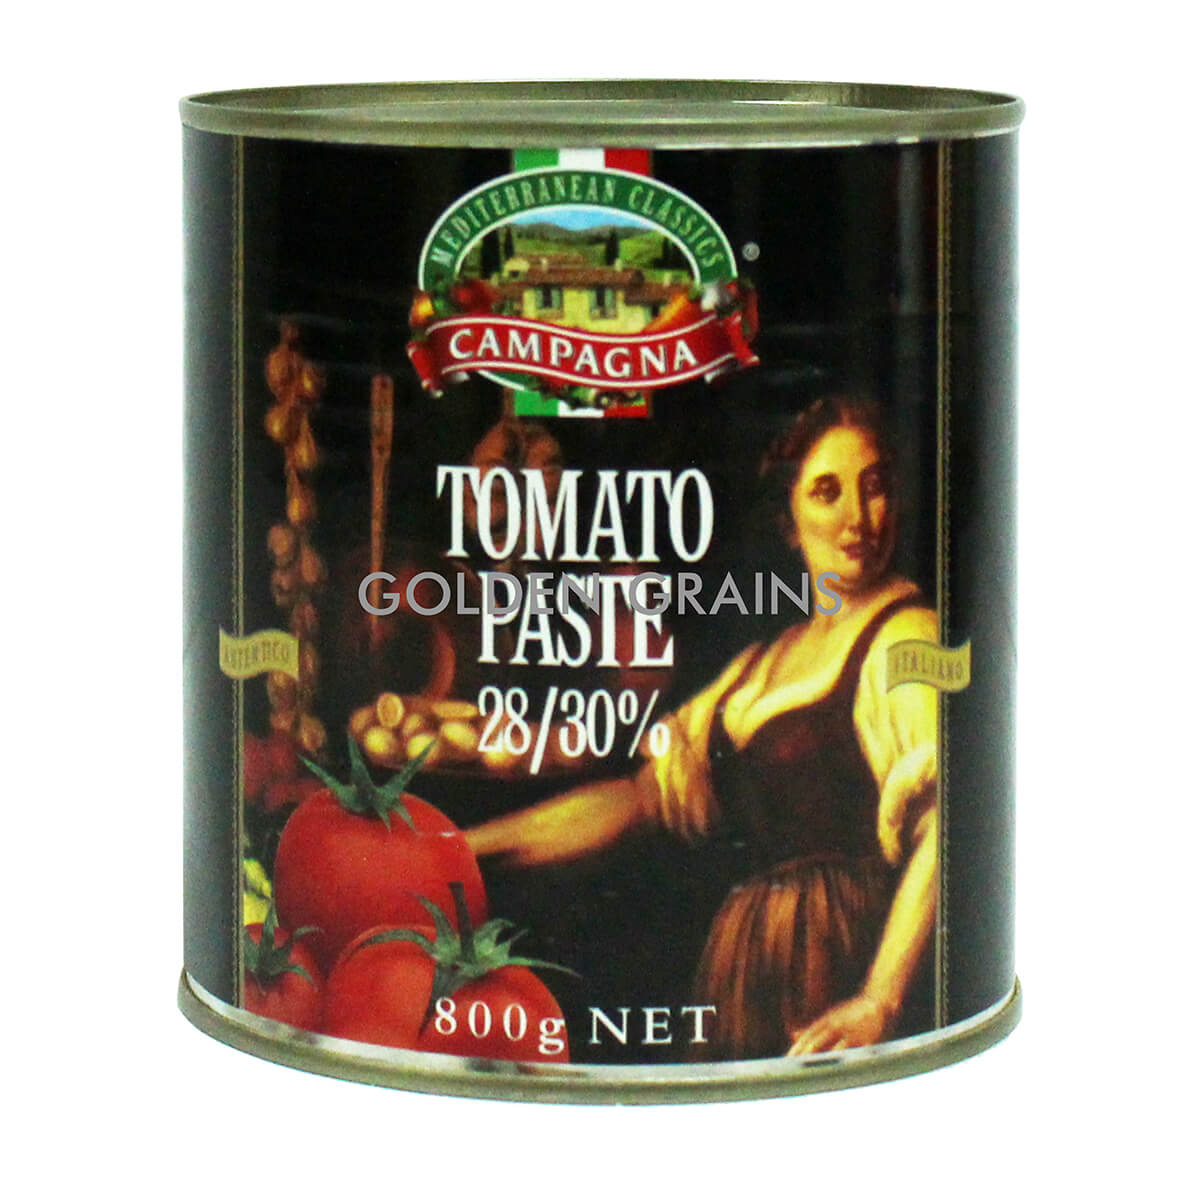 Golden Grains Campagna - Tomato Paste - 800G - Italy - Front.jpg